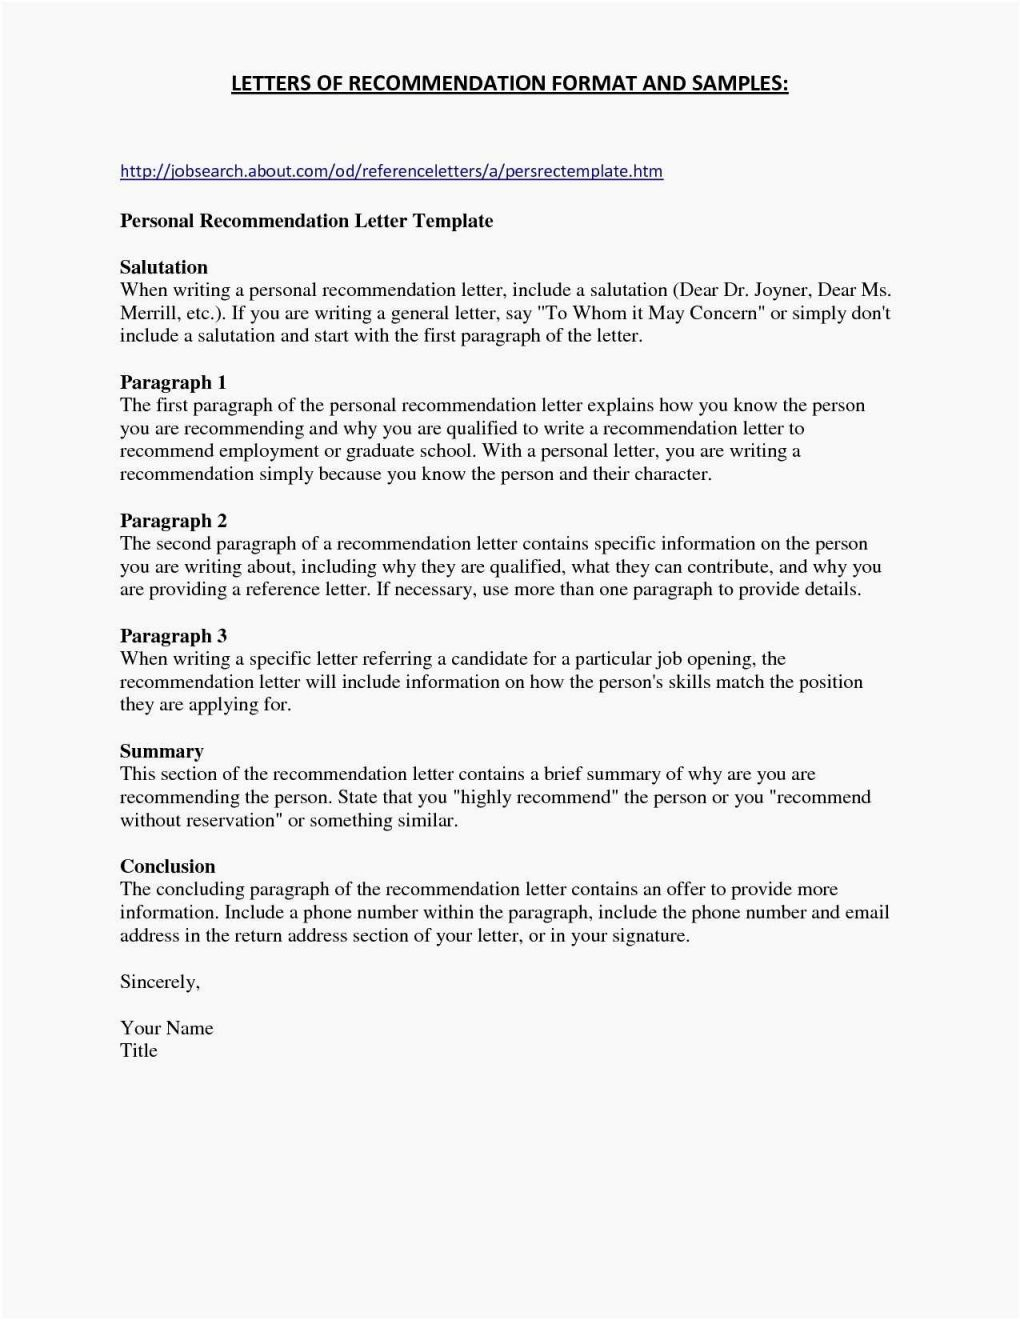 hoa letter template example-Back to School Letter Template top Letter to Hoa Template Qy74 – Documentaries for Change 5-s